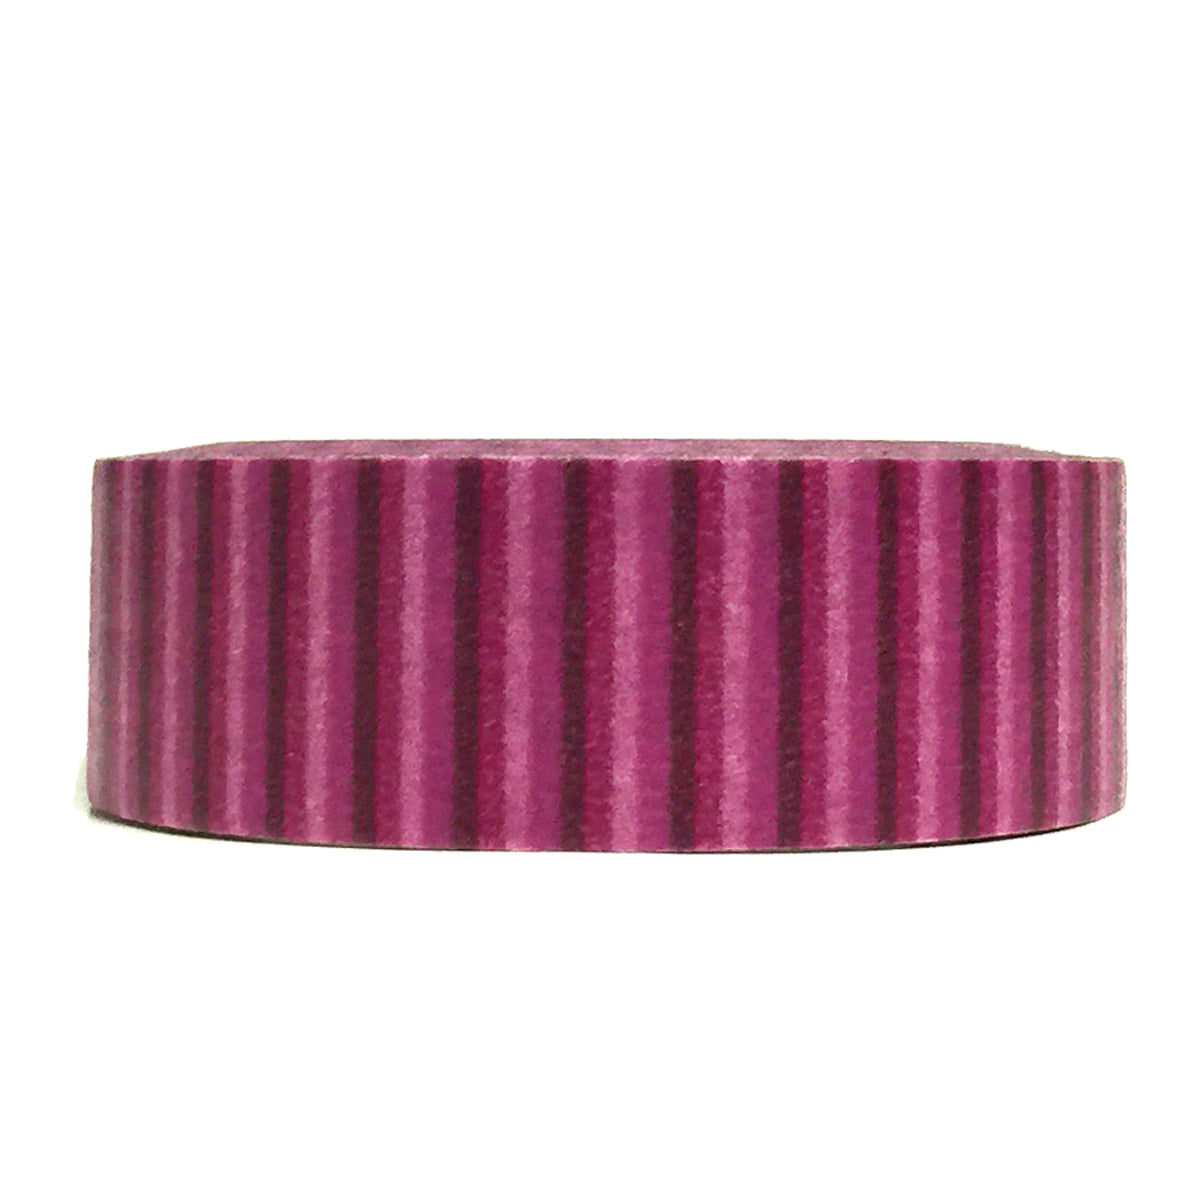 Wrapables Washi Masking Tape, Blue and Purple Group